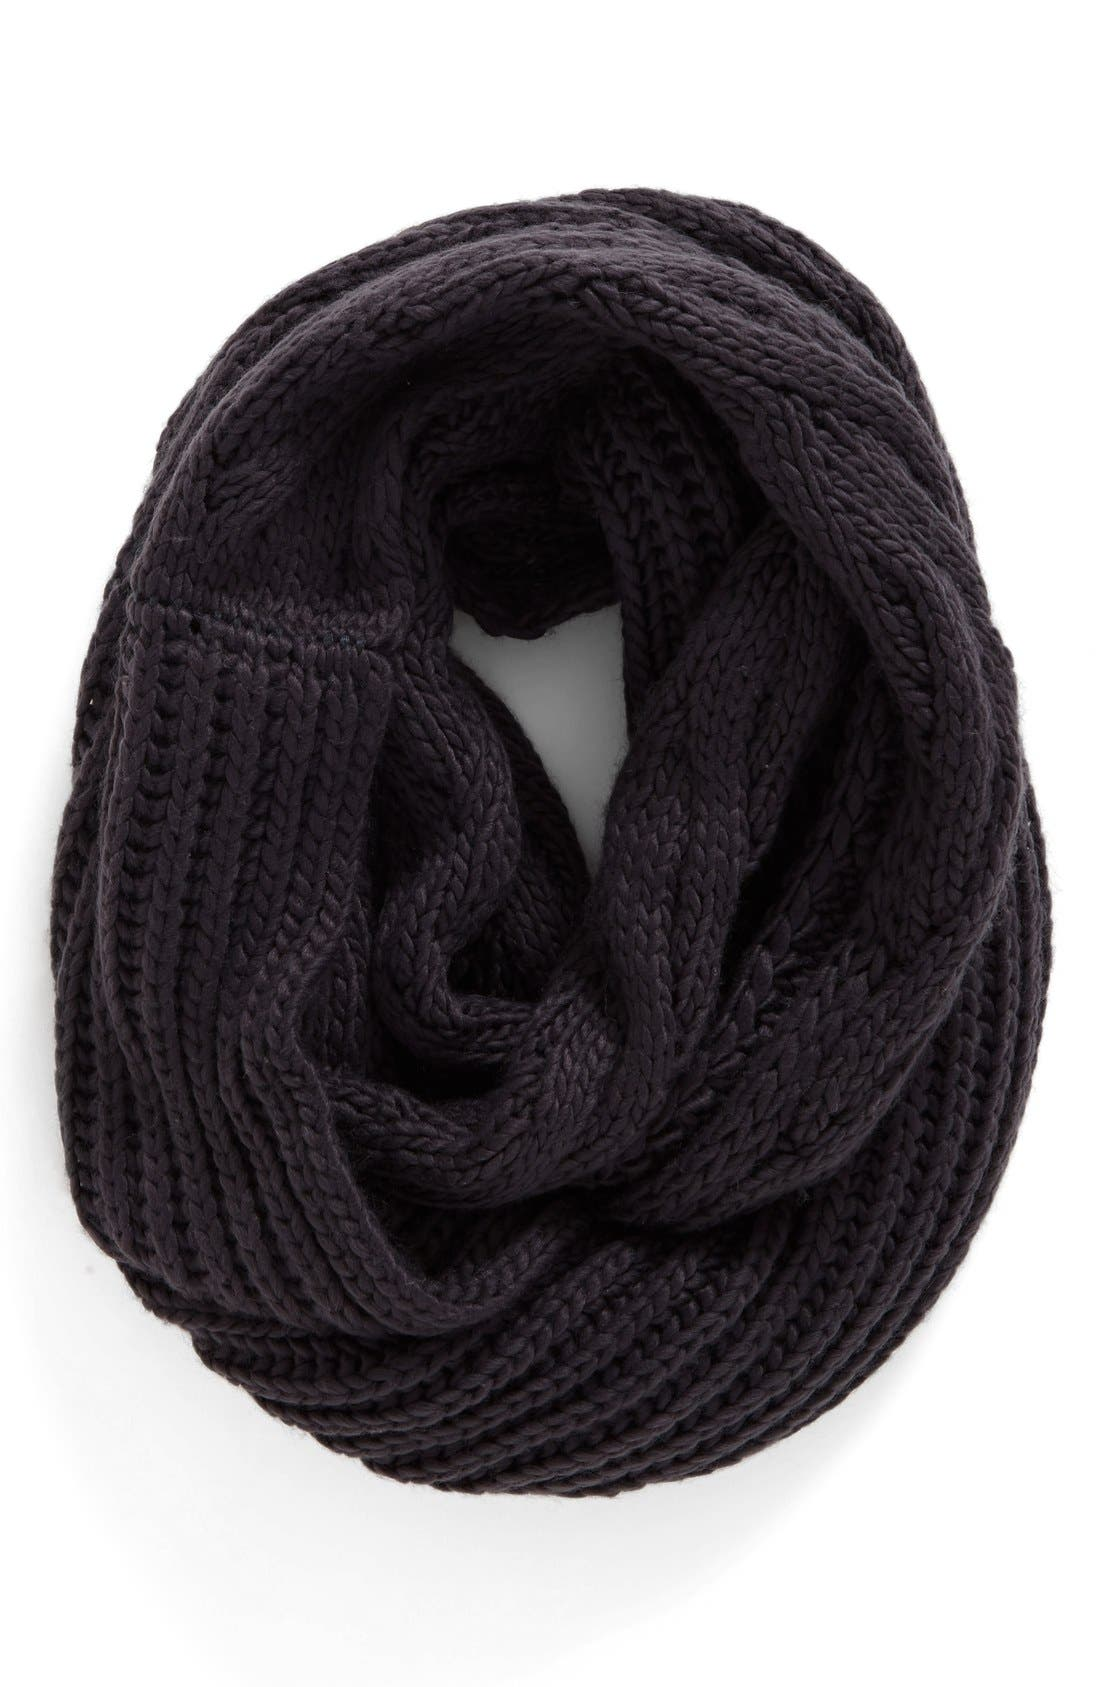 Alternate Image 1 Selected - BP. Cable Knit Infinity Scarf (Special Purchase)